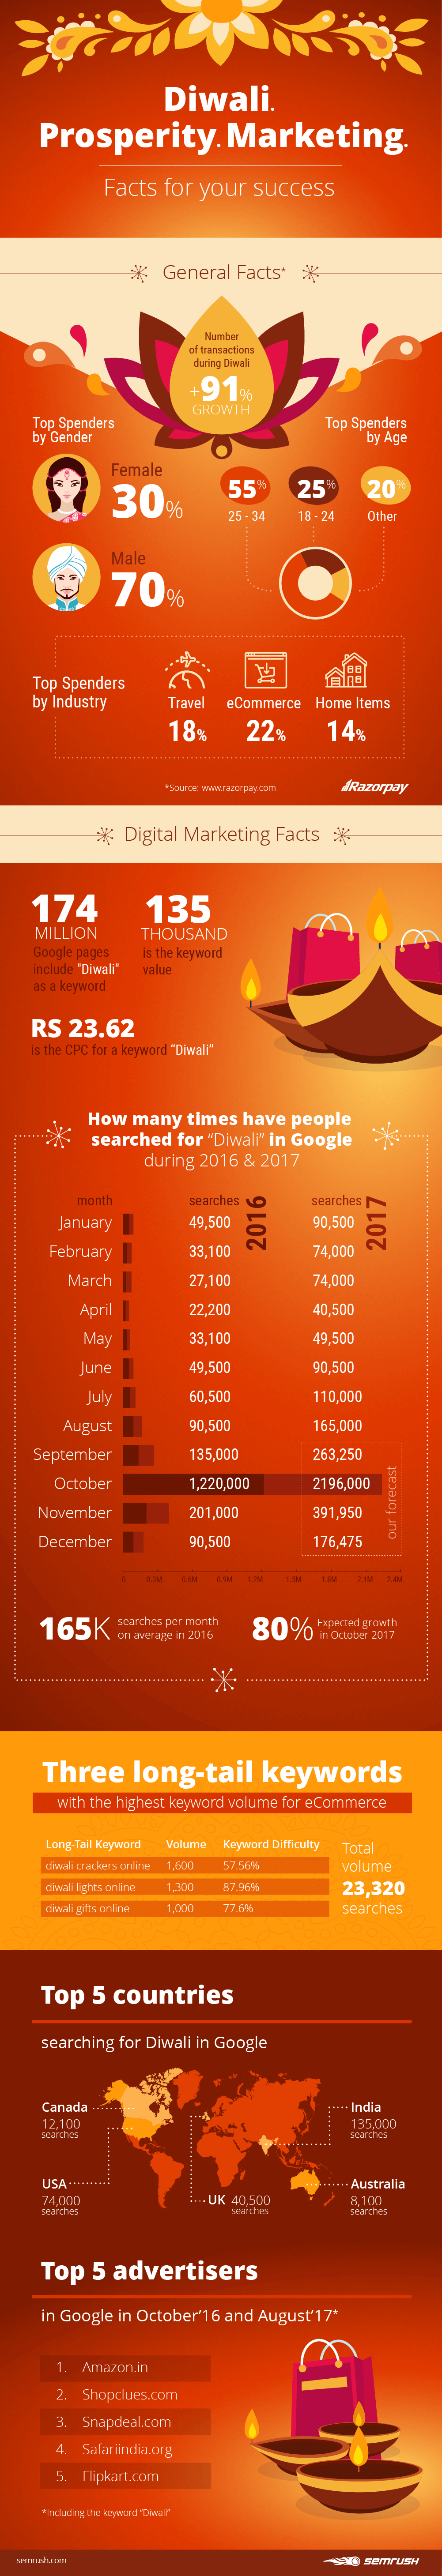 Diwali 2016-17 Study by SEMrush [Infographic]